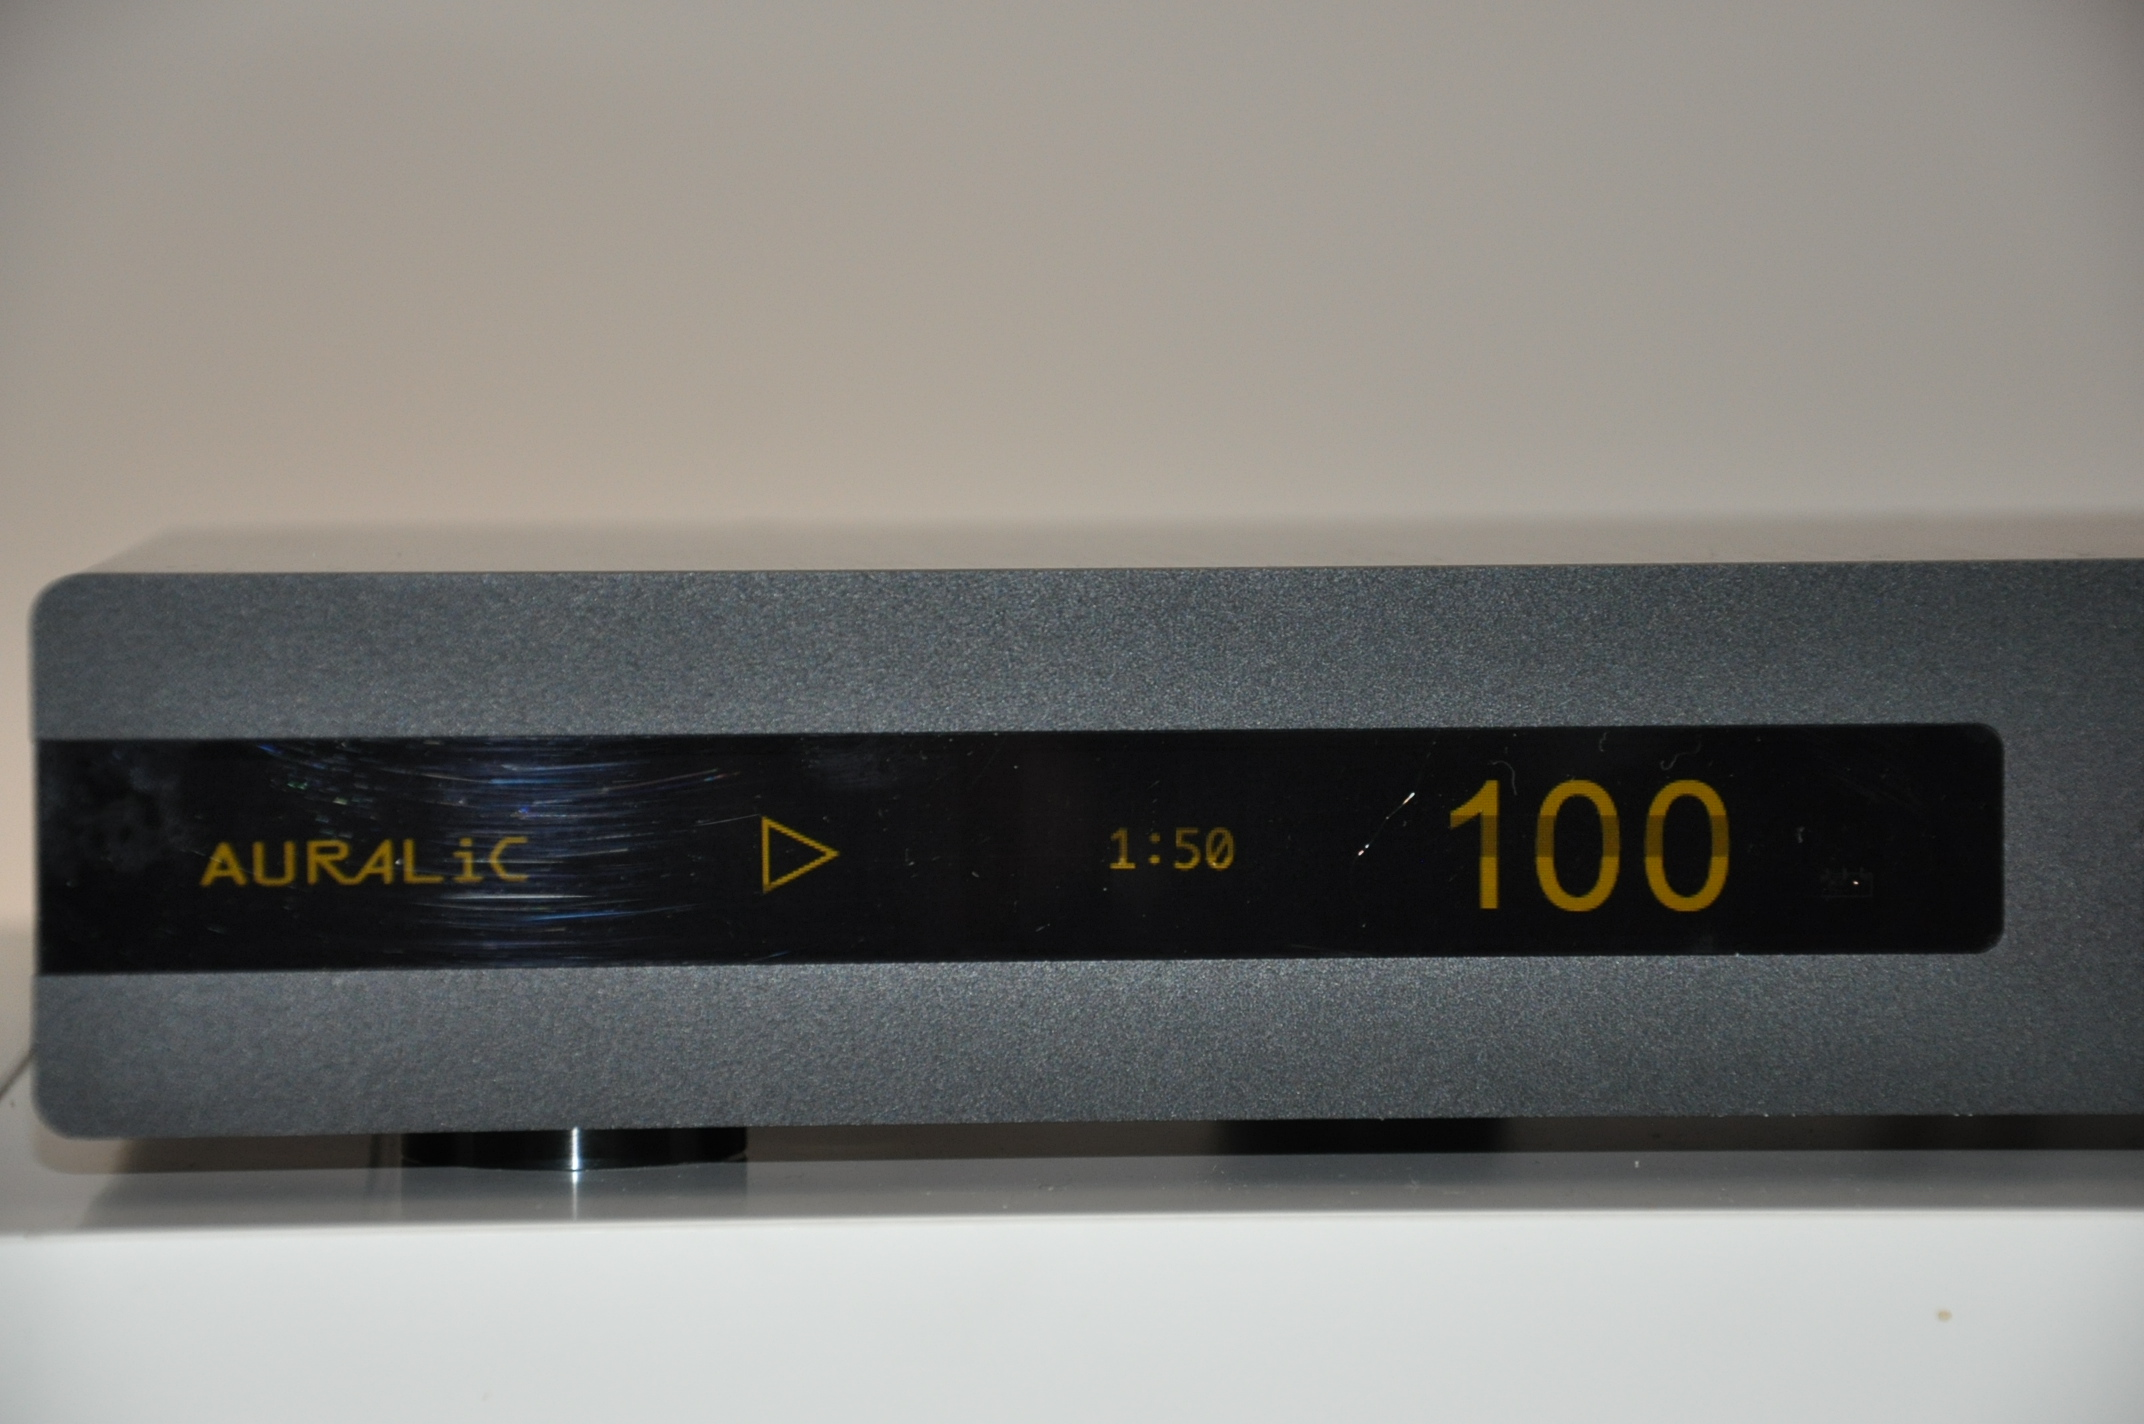 Auralic Altair - Streaming DAC Review - HiFi and Music Source